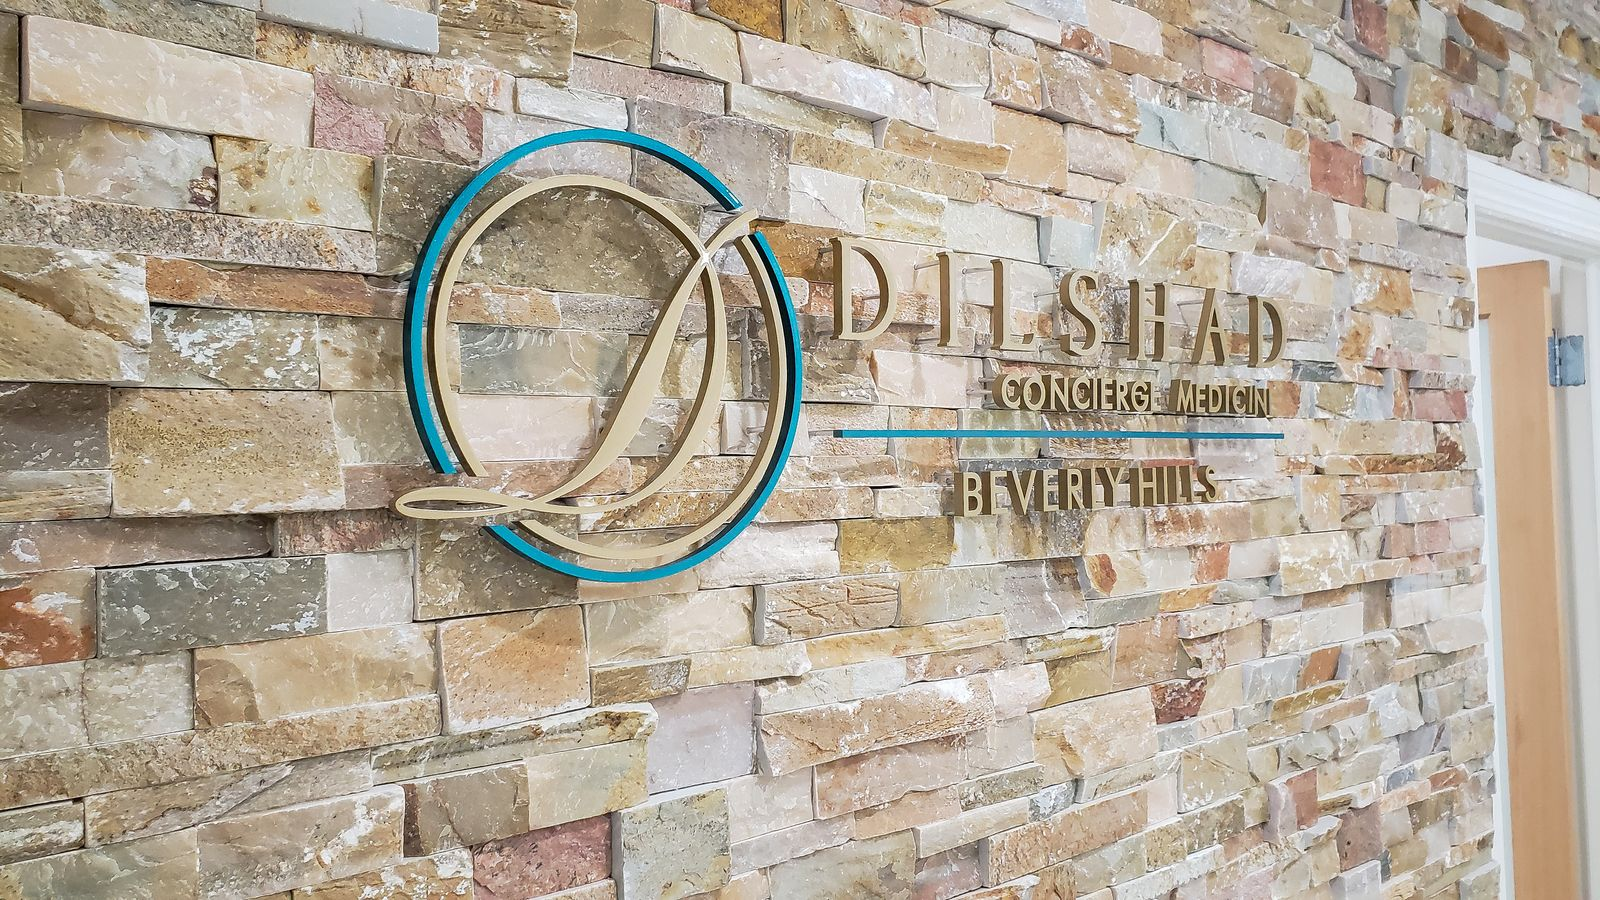 Dilshad Concierge Medicine 3d logo sign and letters displaying the company name made of acrylic for office interior branding